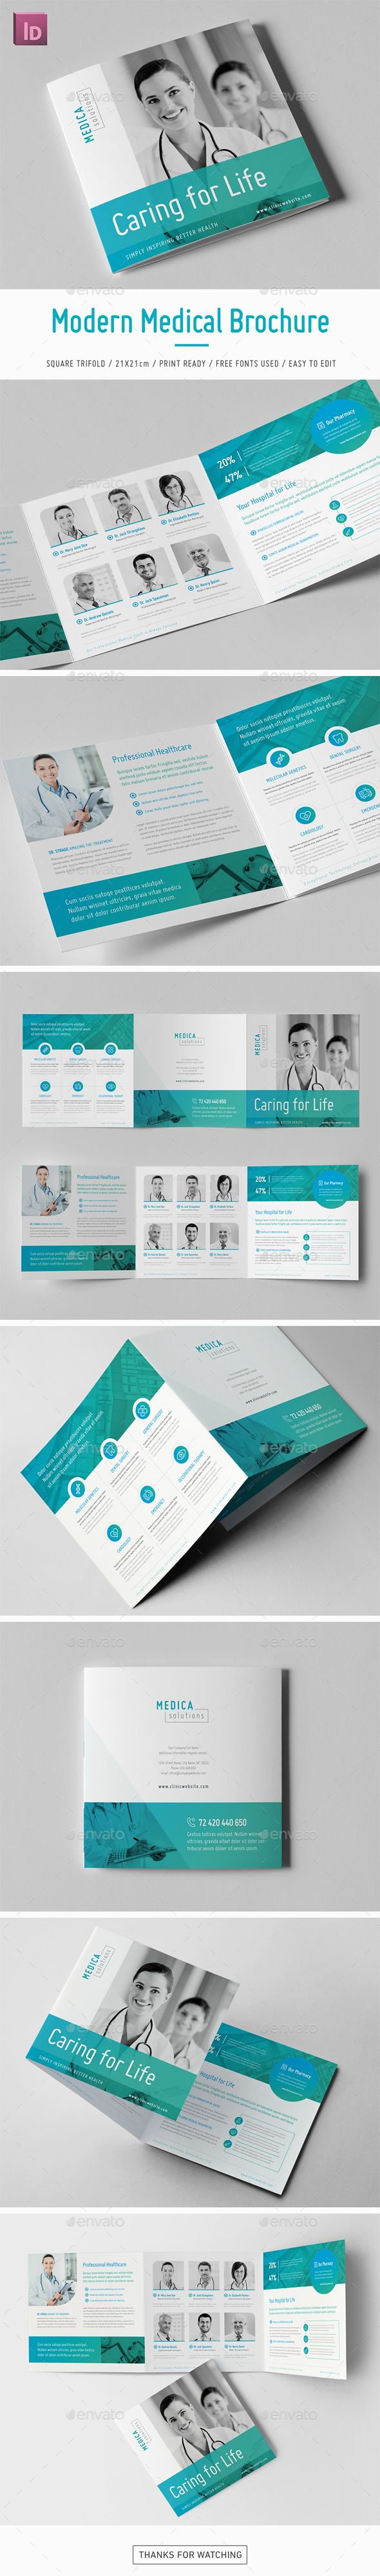 25 best medical brochure ideas on pinterest medical for Breastfeeding brochure templates